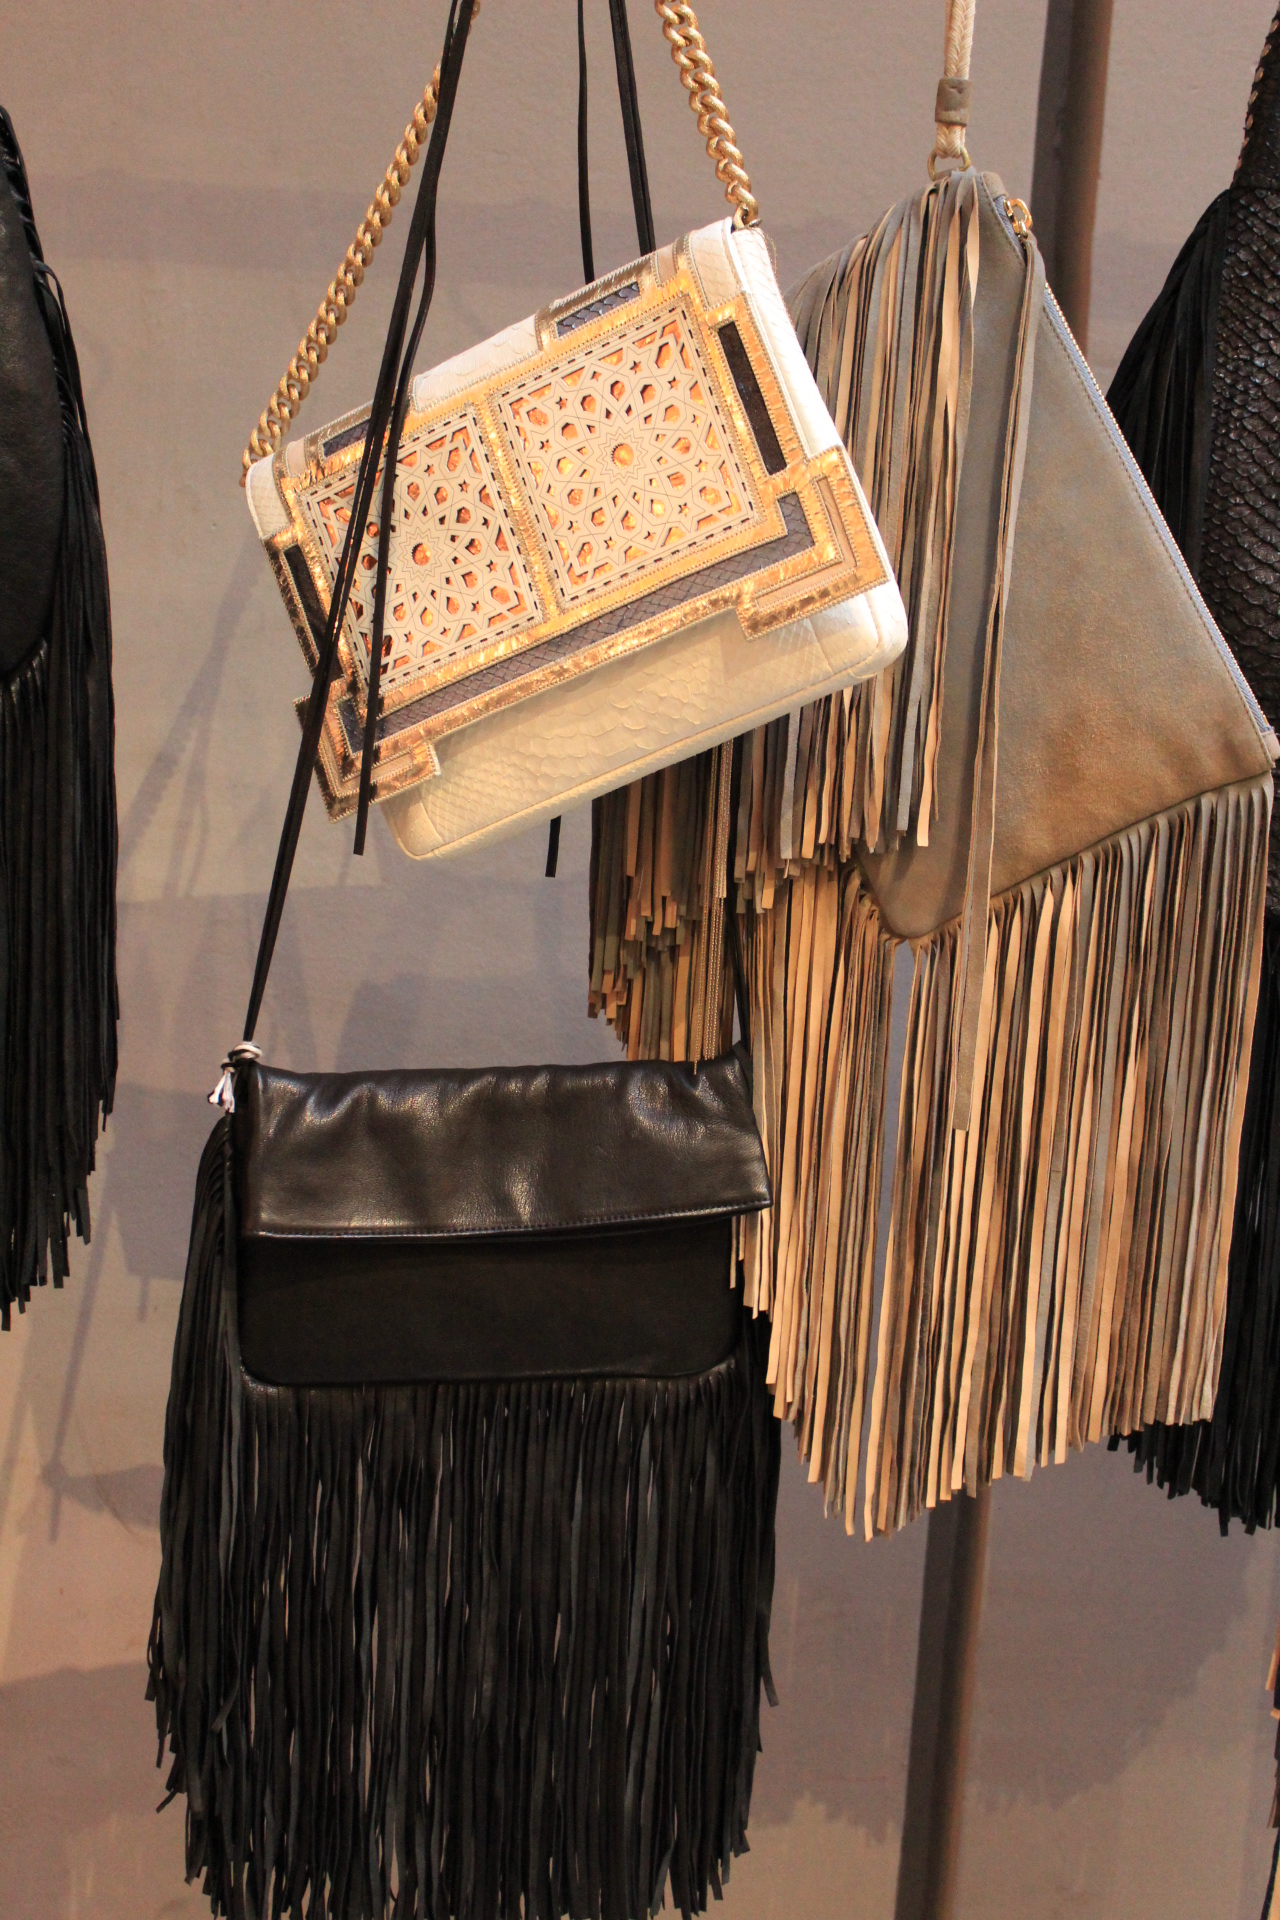 Let's rock with accessories | #accessories #industryfiles #bags #jewelry #style #fashion